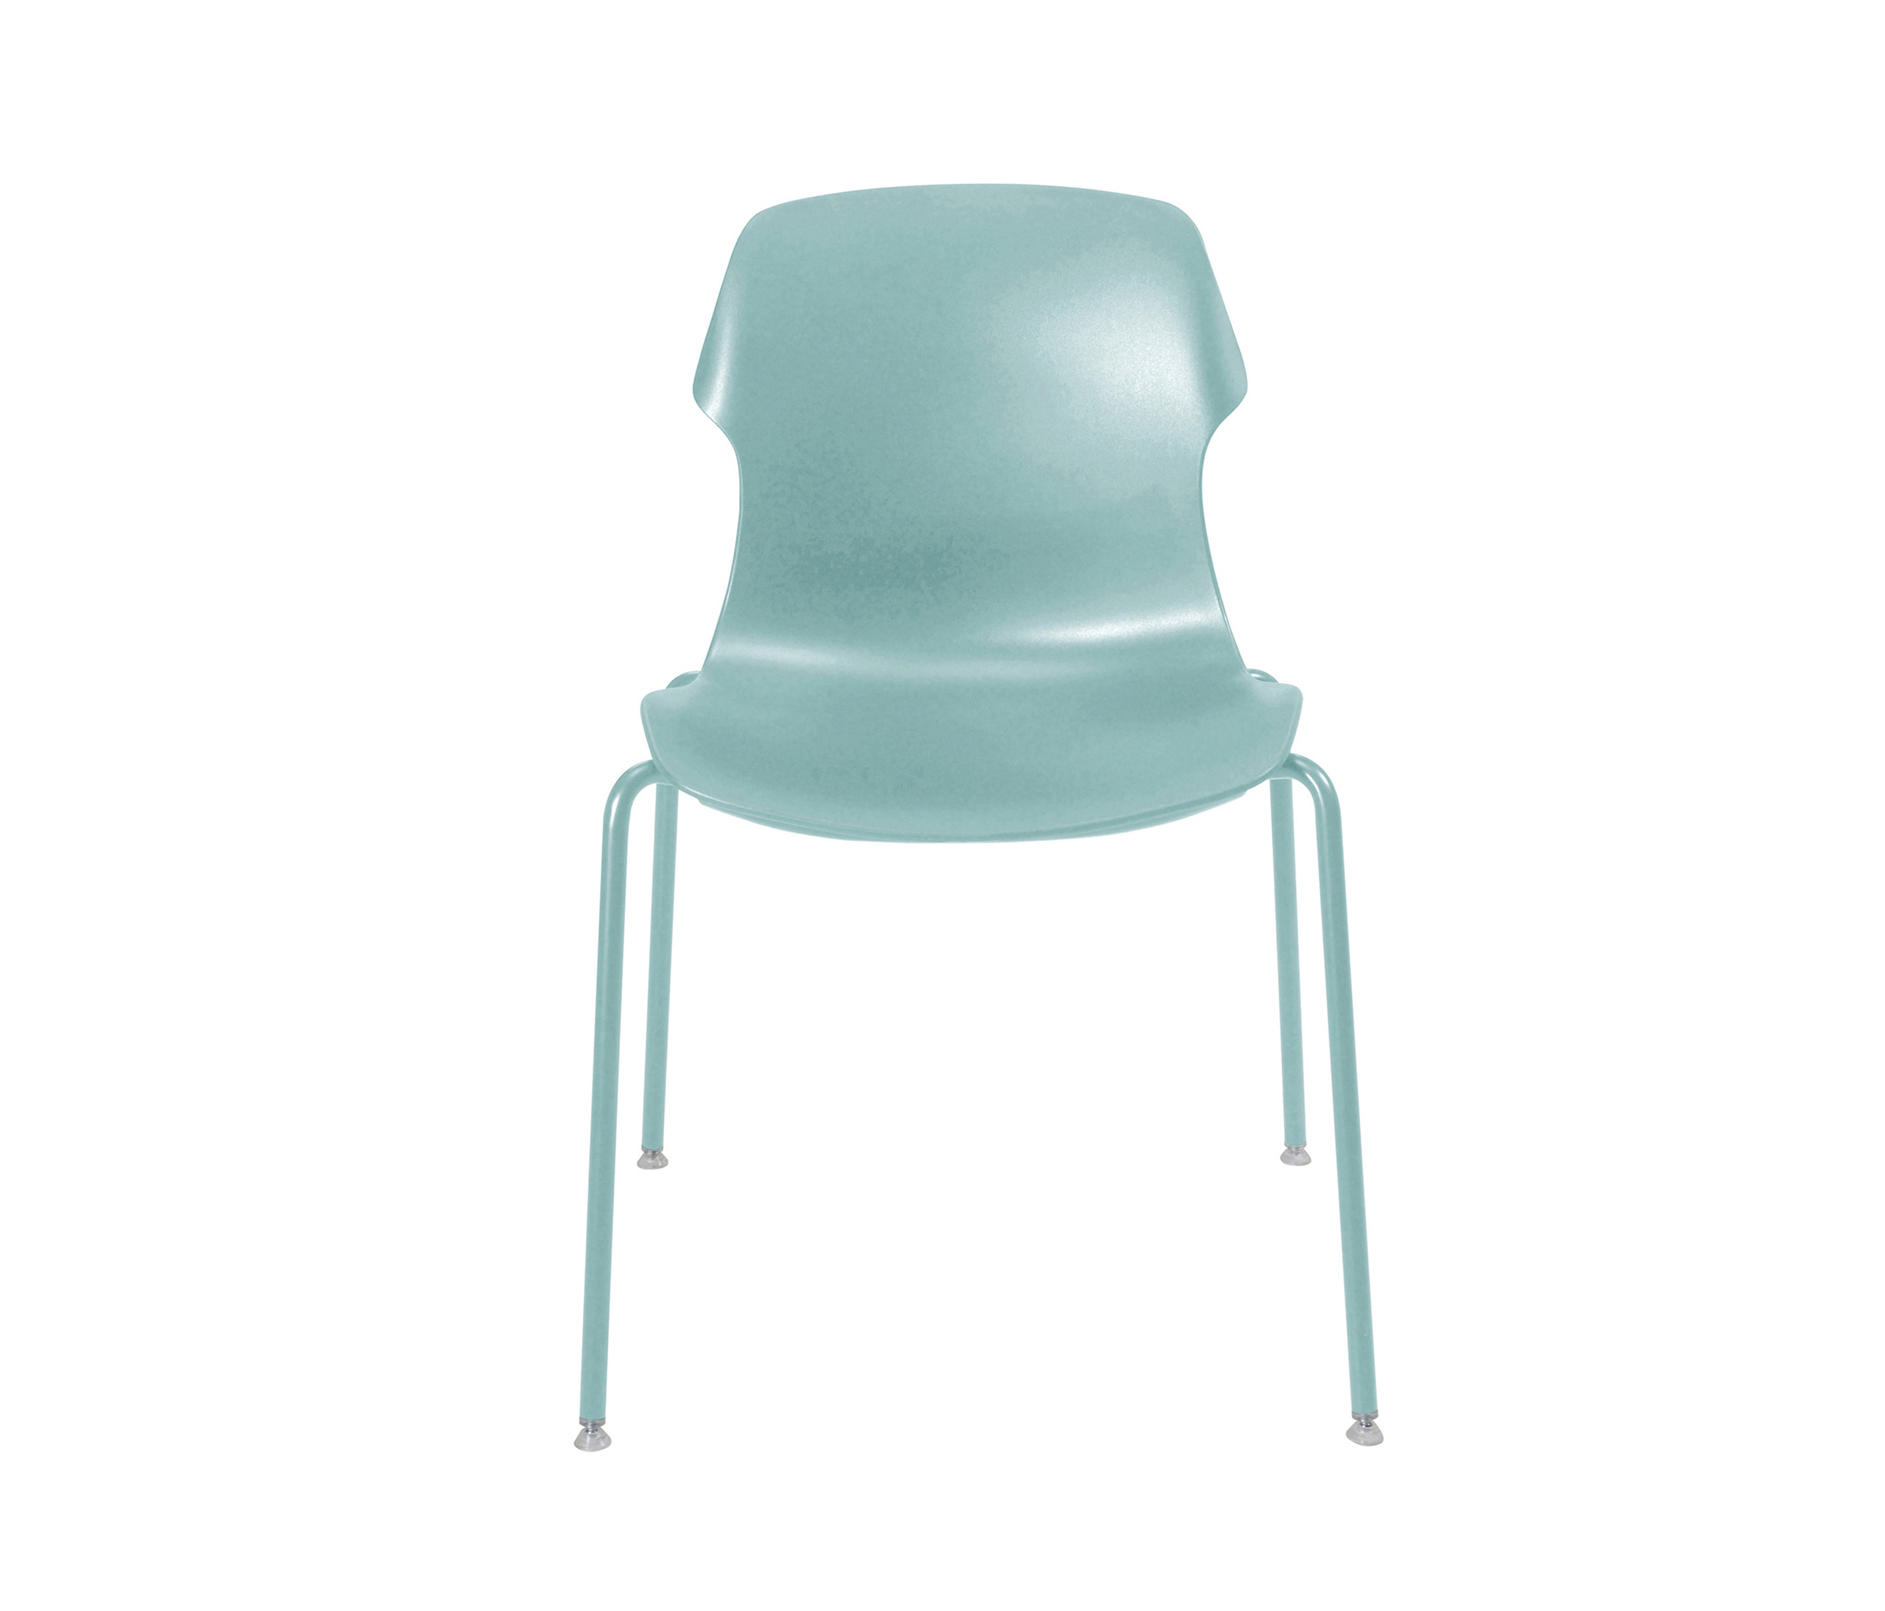 IT | Chairs Stereo Four Leg Chair By CASAMANIA HORM.